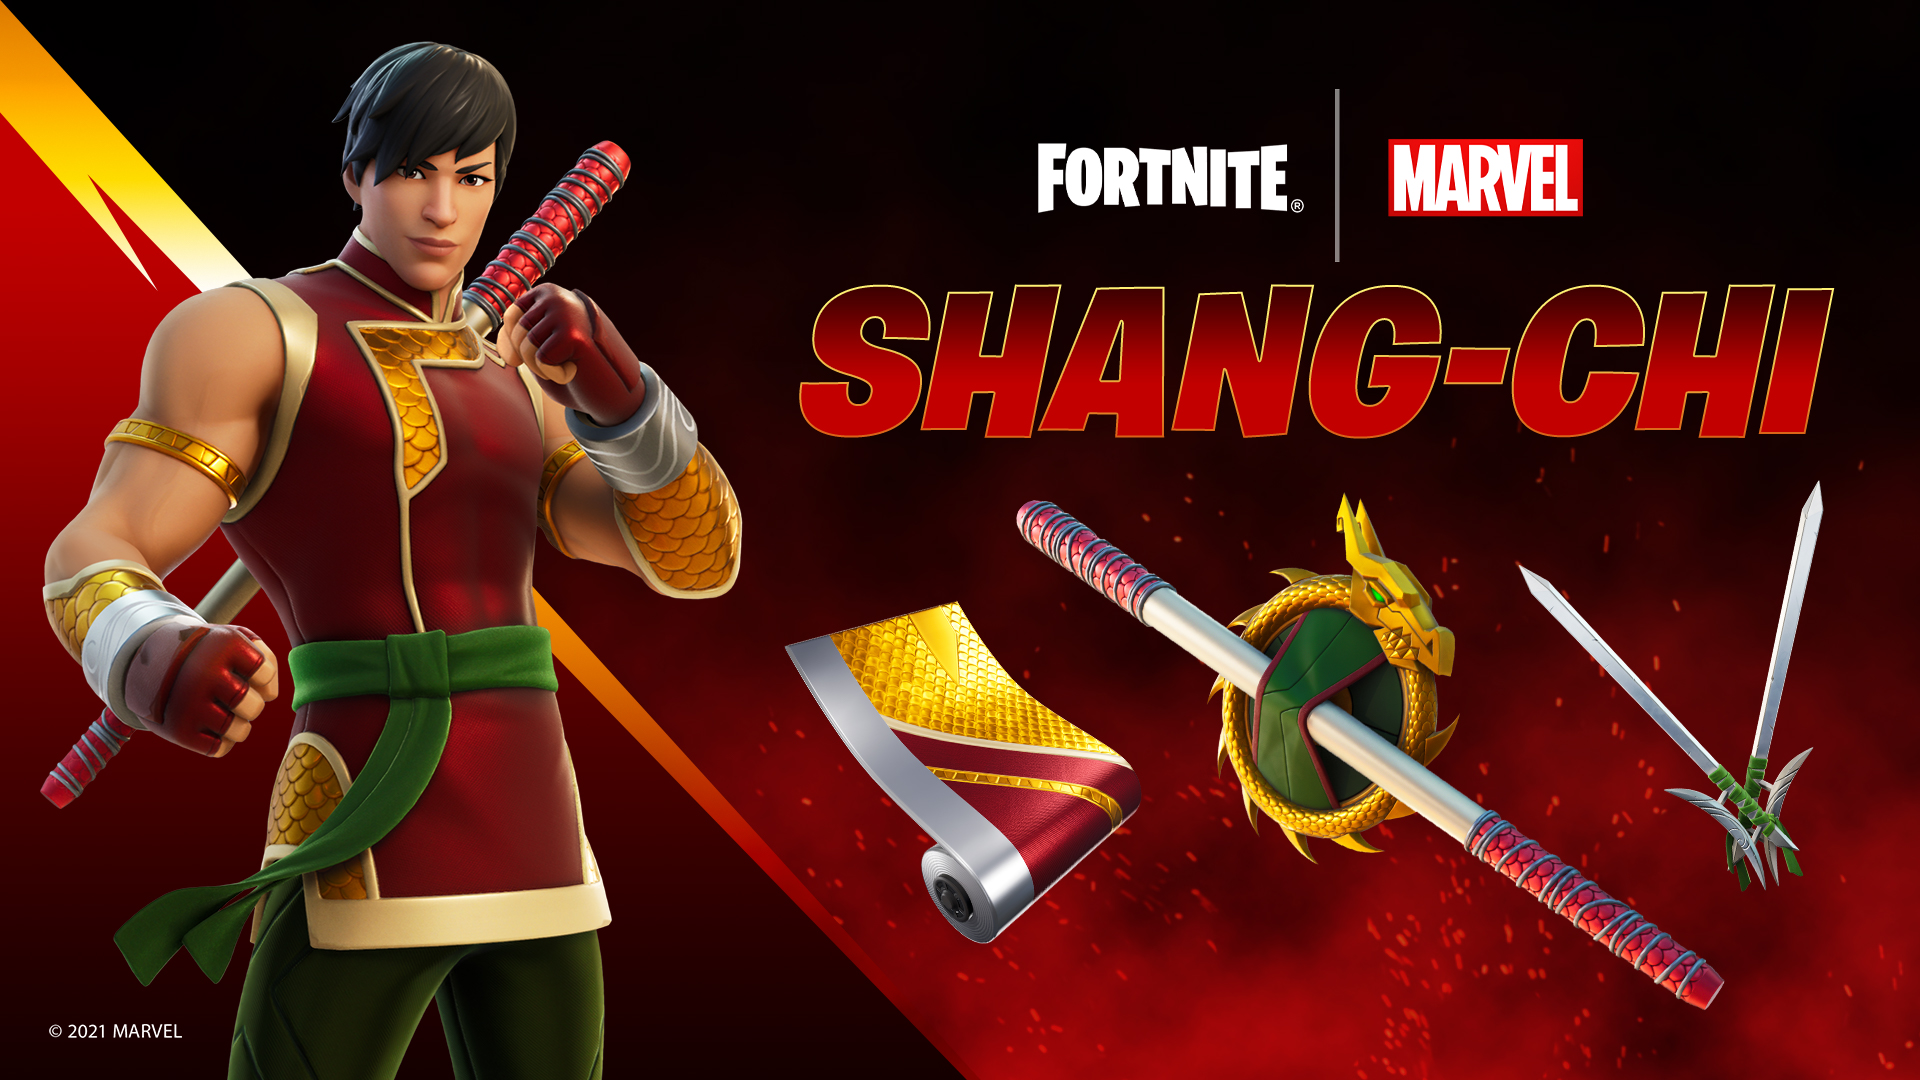 The Shang-Chi Fortnite Skin on a bed backdrop next to his dragon inspired weapons, and red and gold weapon wrap.